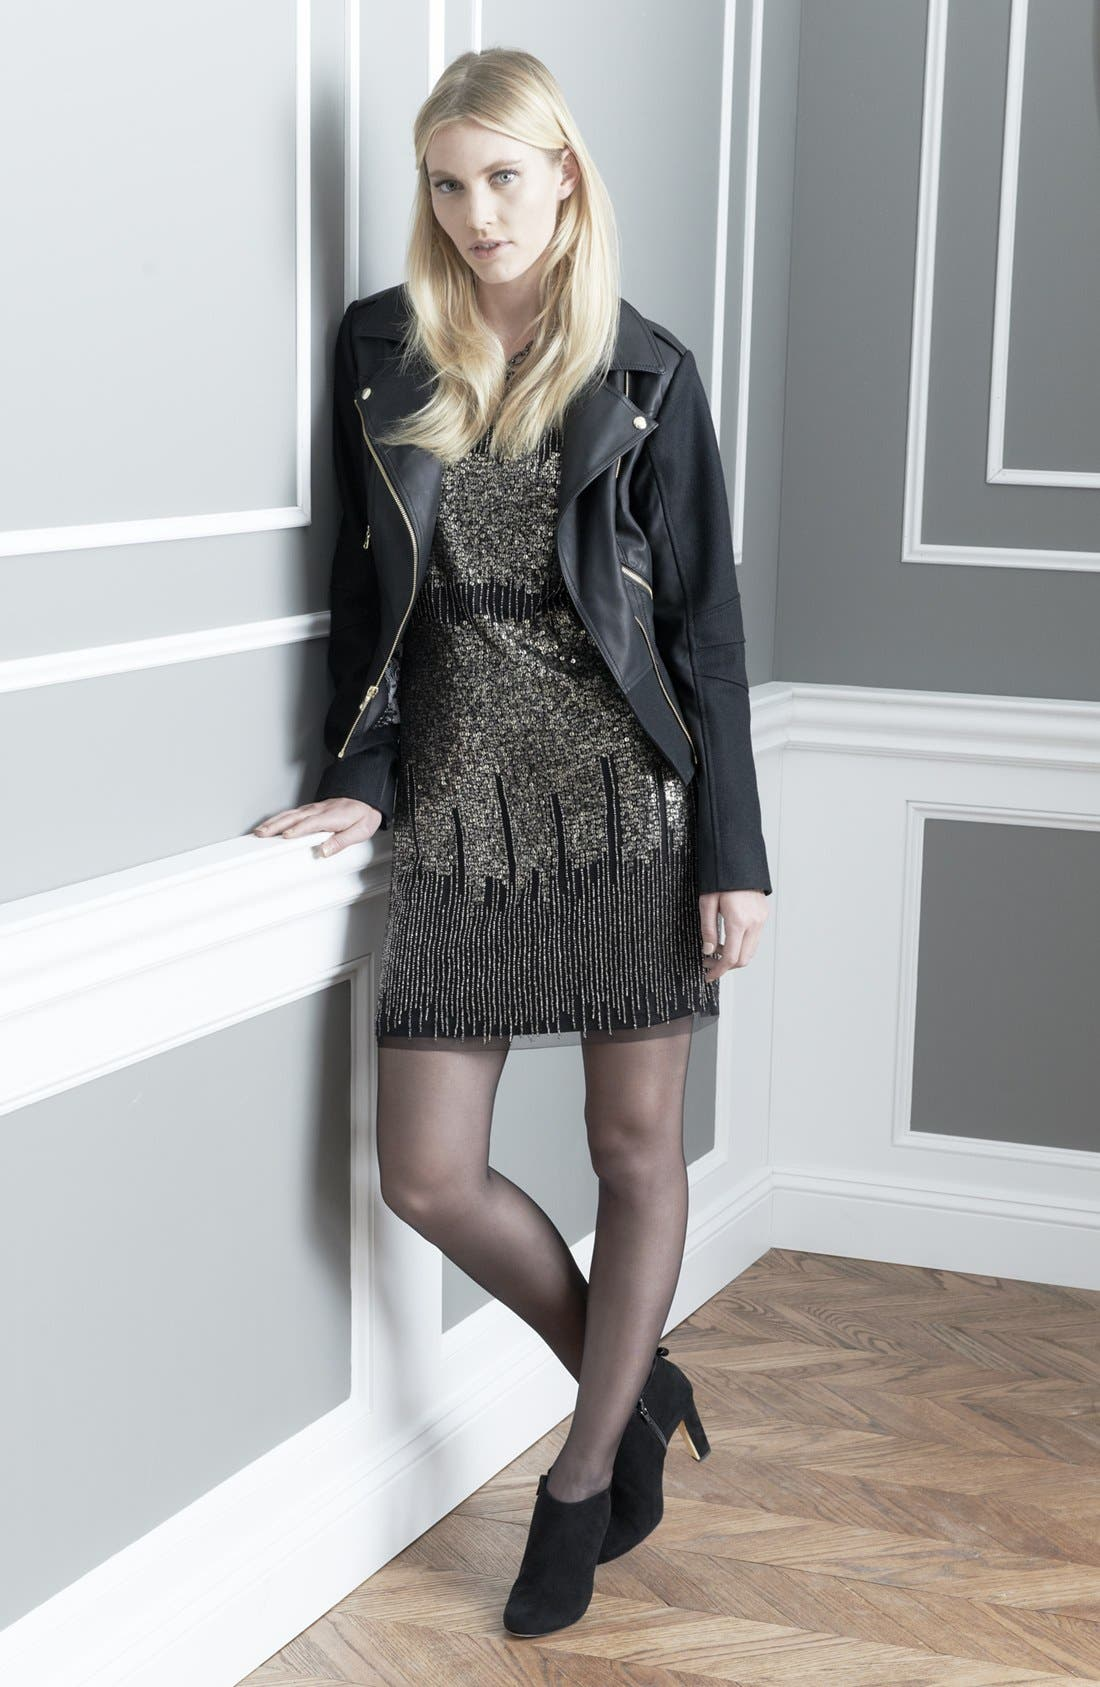 Main Image - GUESS Jacket & Adrianna Papell Dress